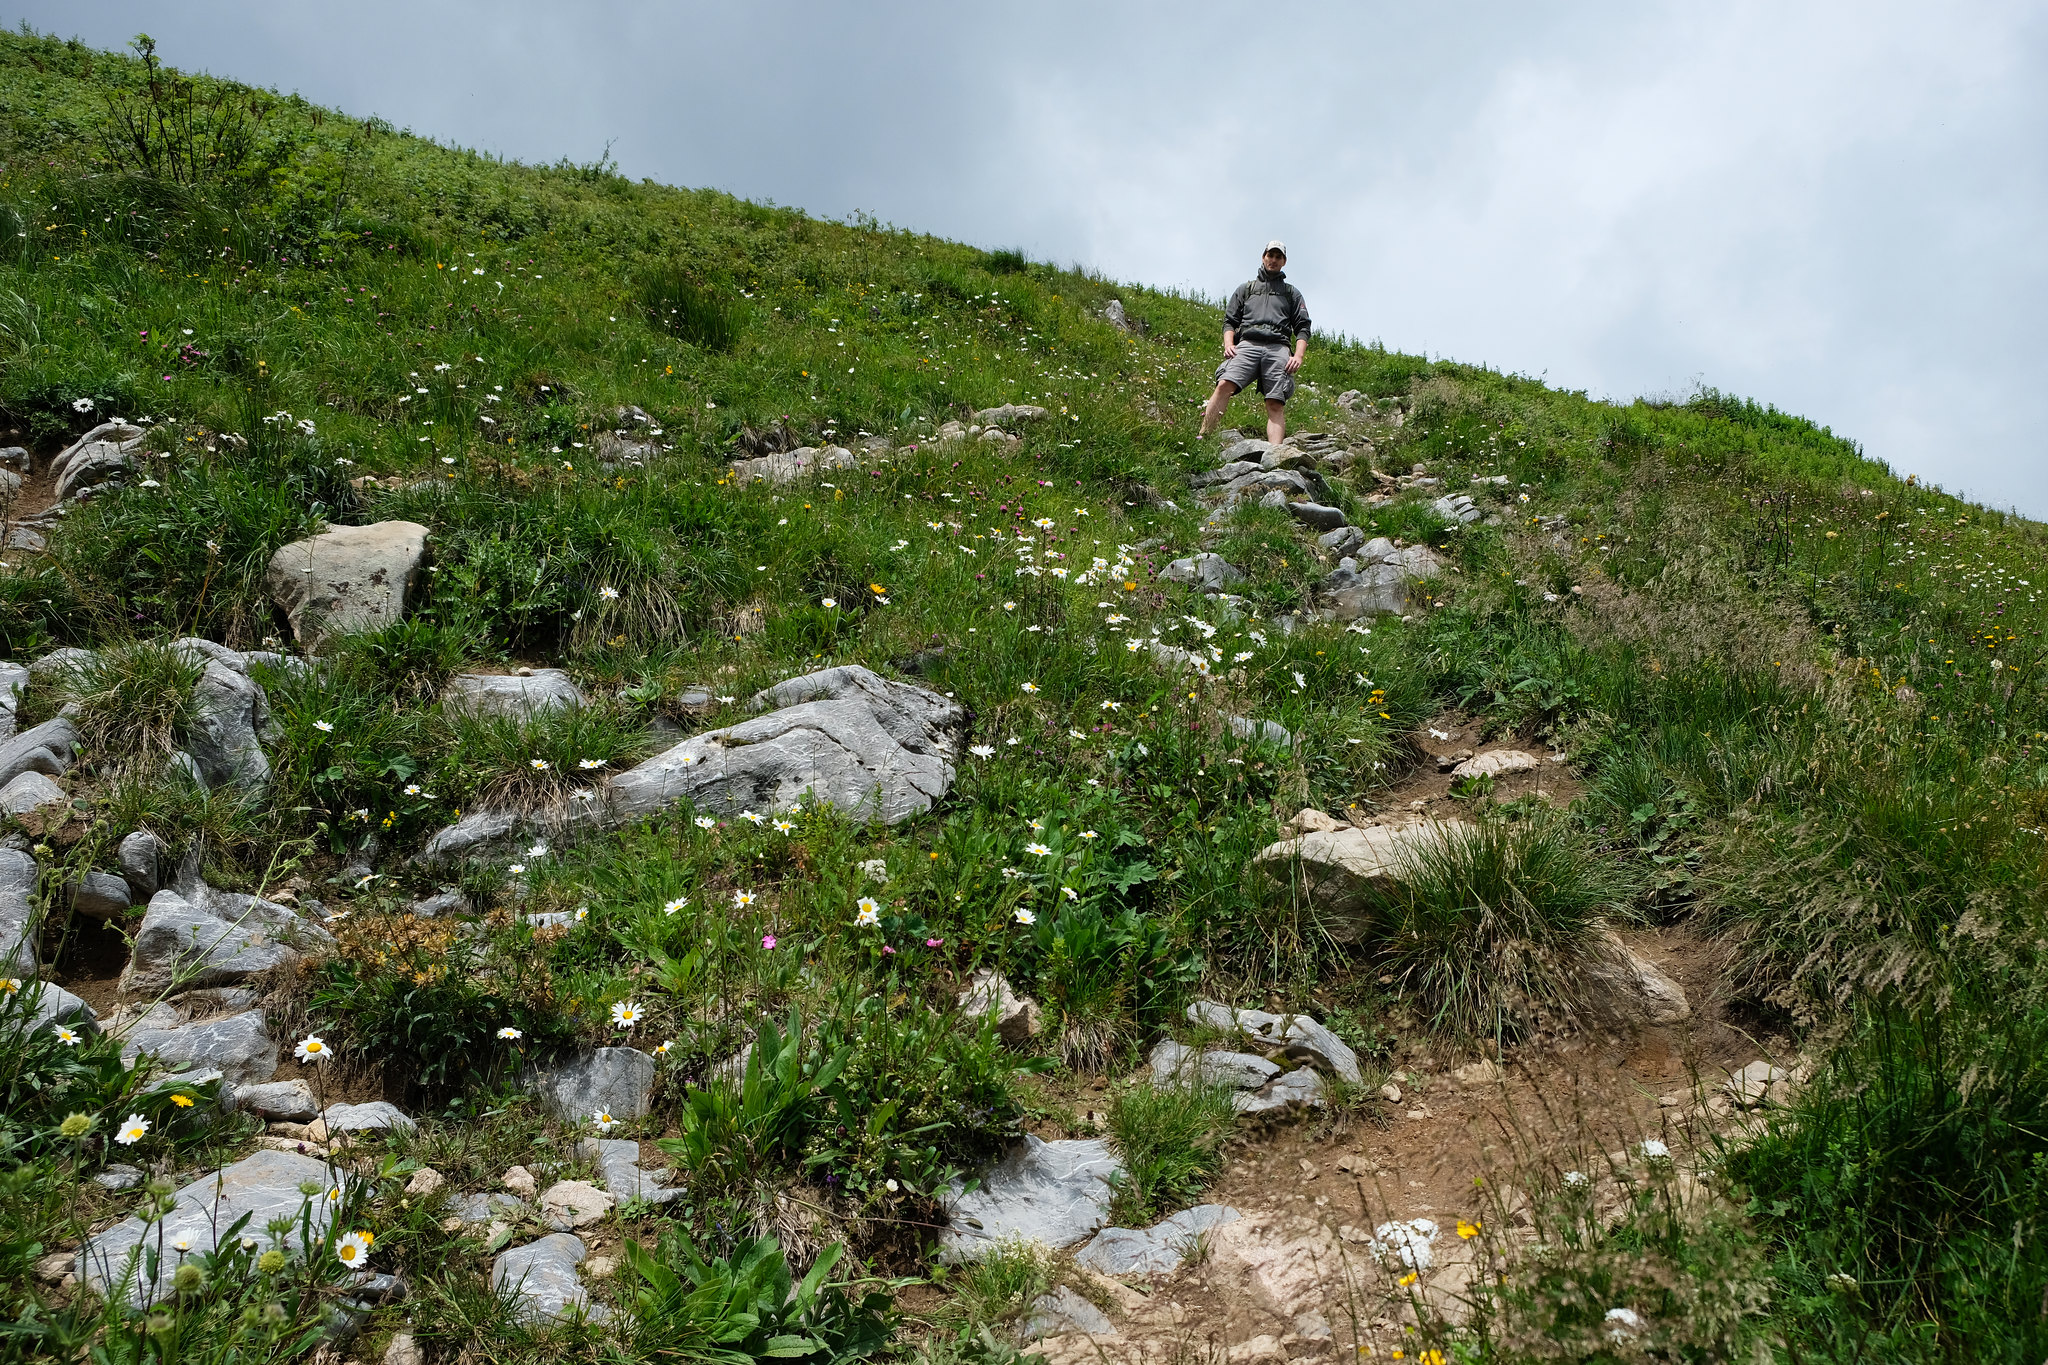 Best Day Hikes Little Fatra: Hiking to Chleb peak, Little Fatra, Slovakia